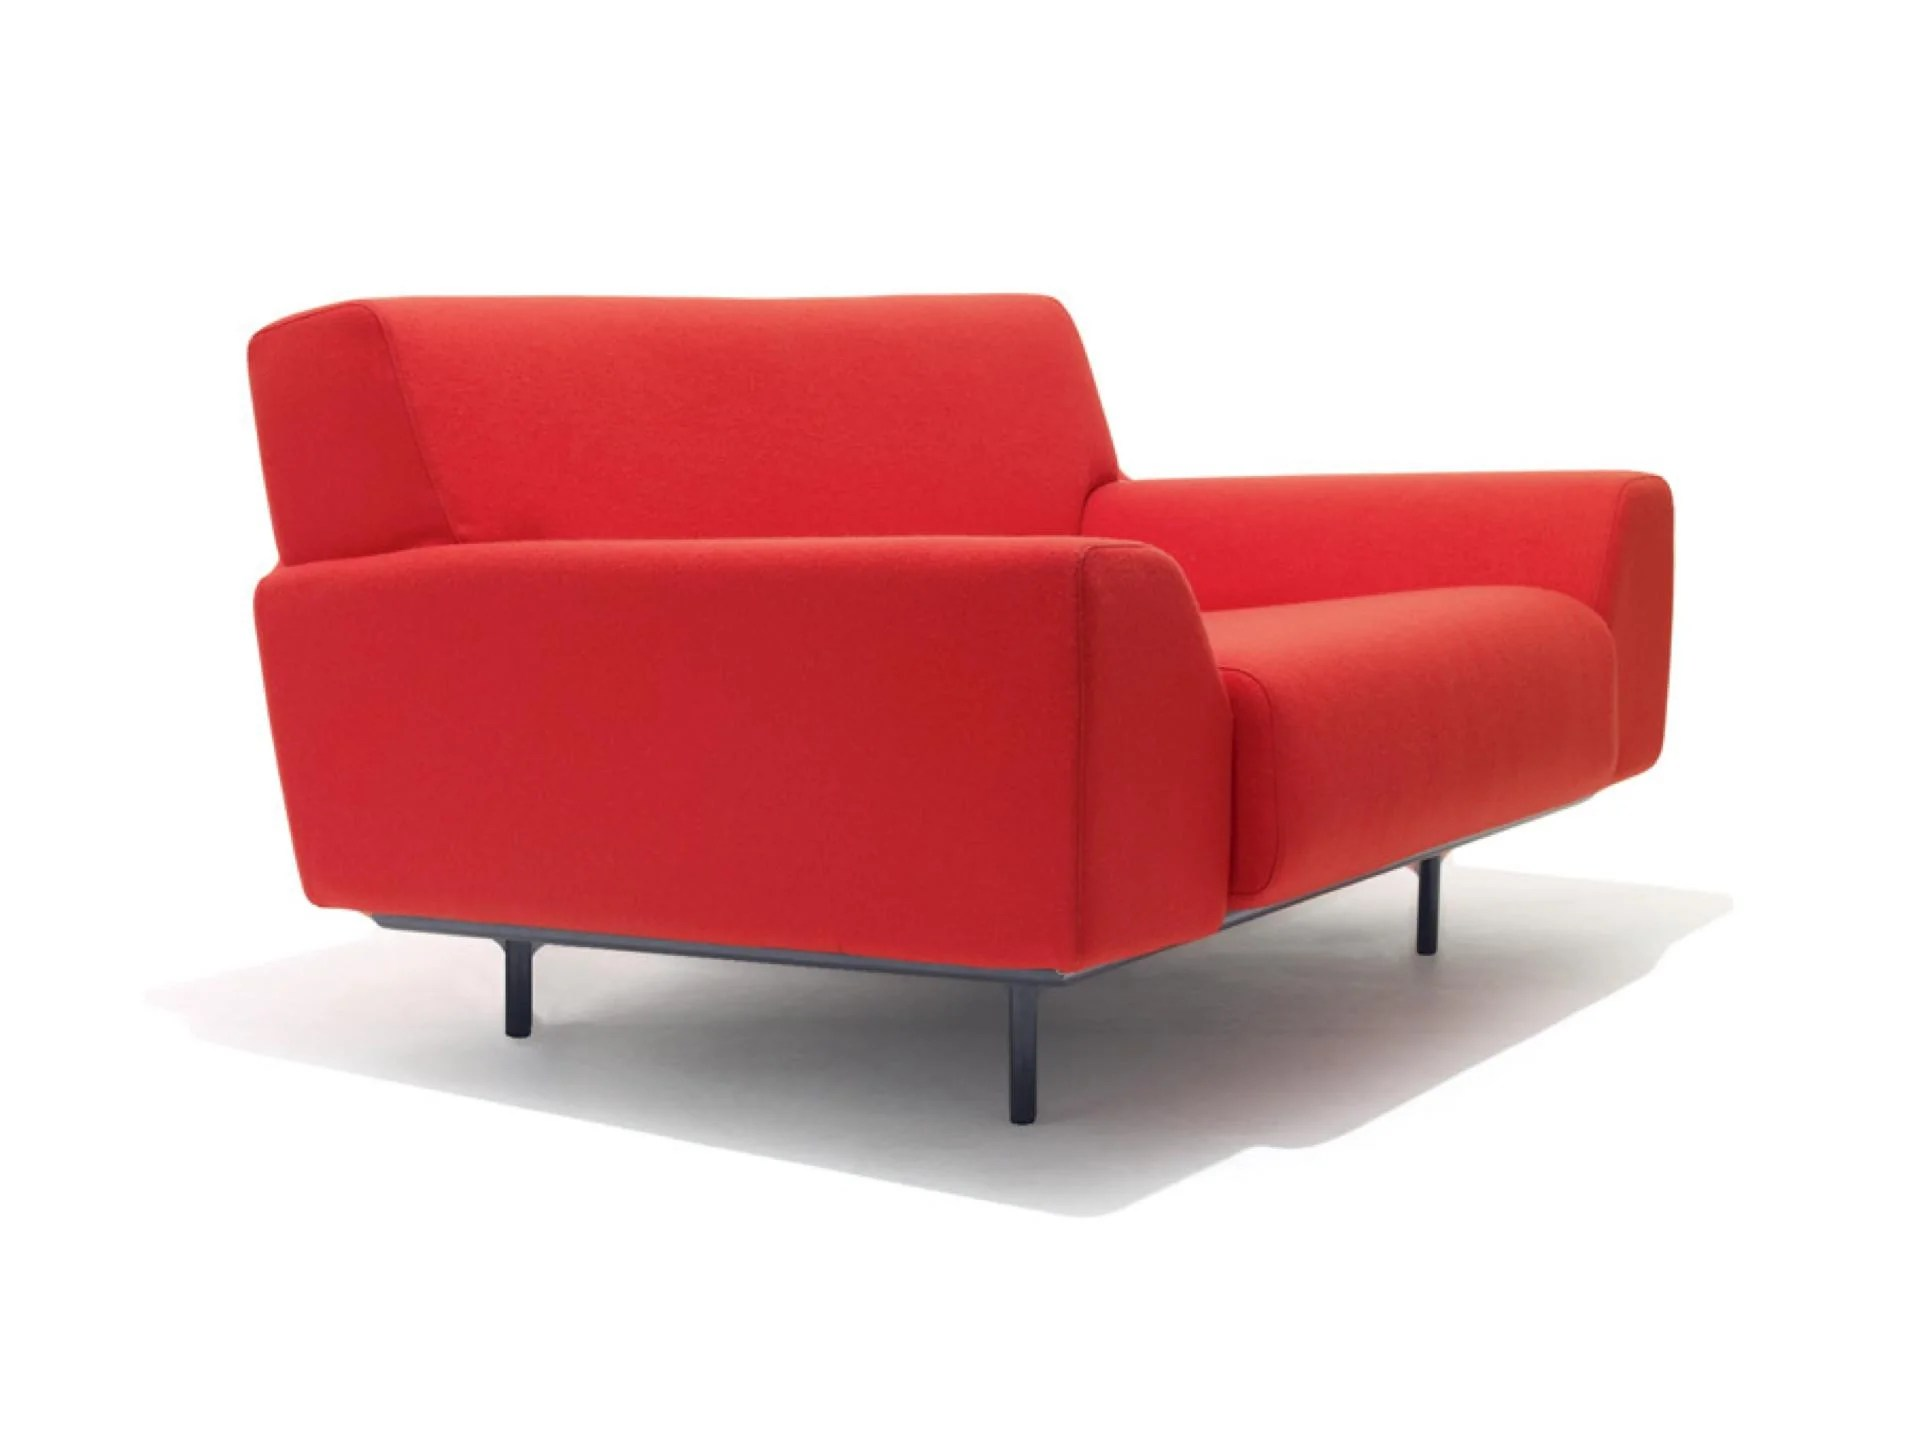 Lounge Couch Company Boeri Lounge Chair Couch Potato Company